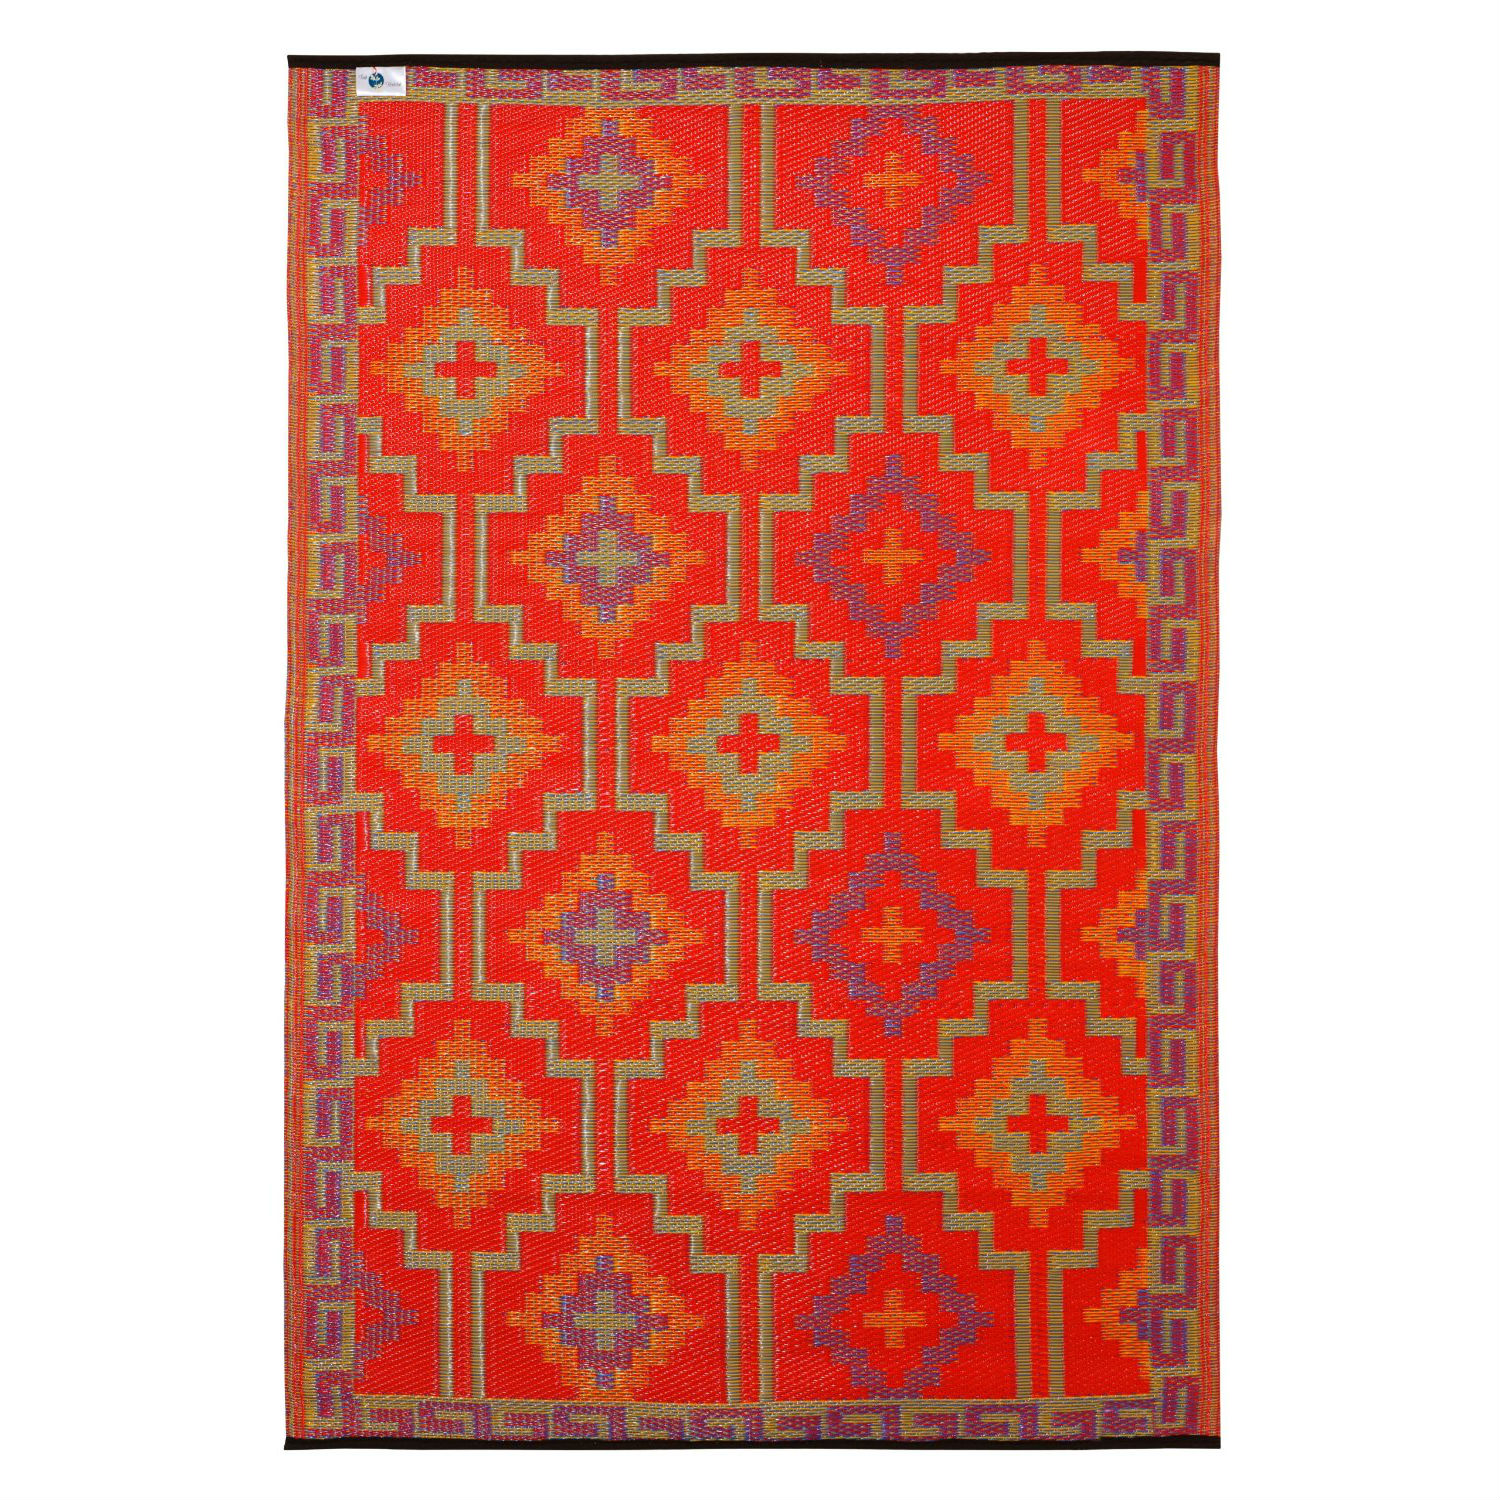 Looking For That Perfect 6\' x 9′ Indoor Outdoor Rug?